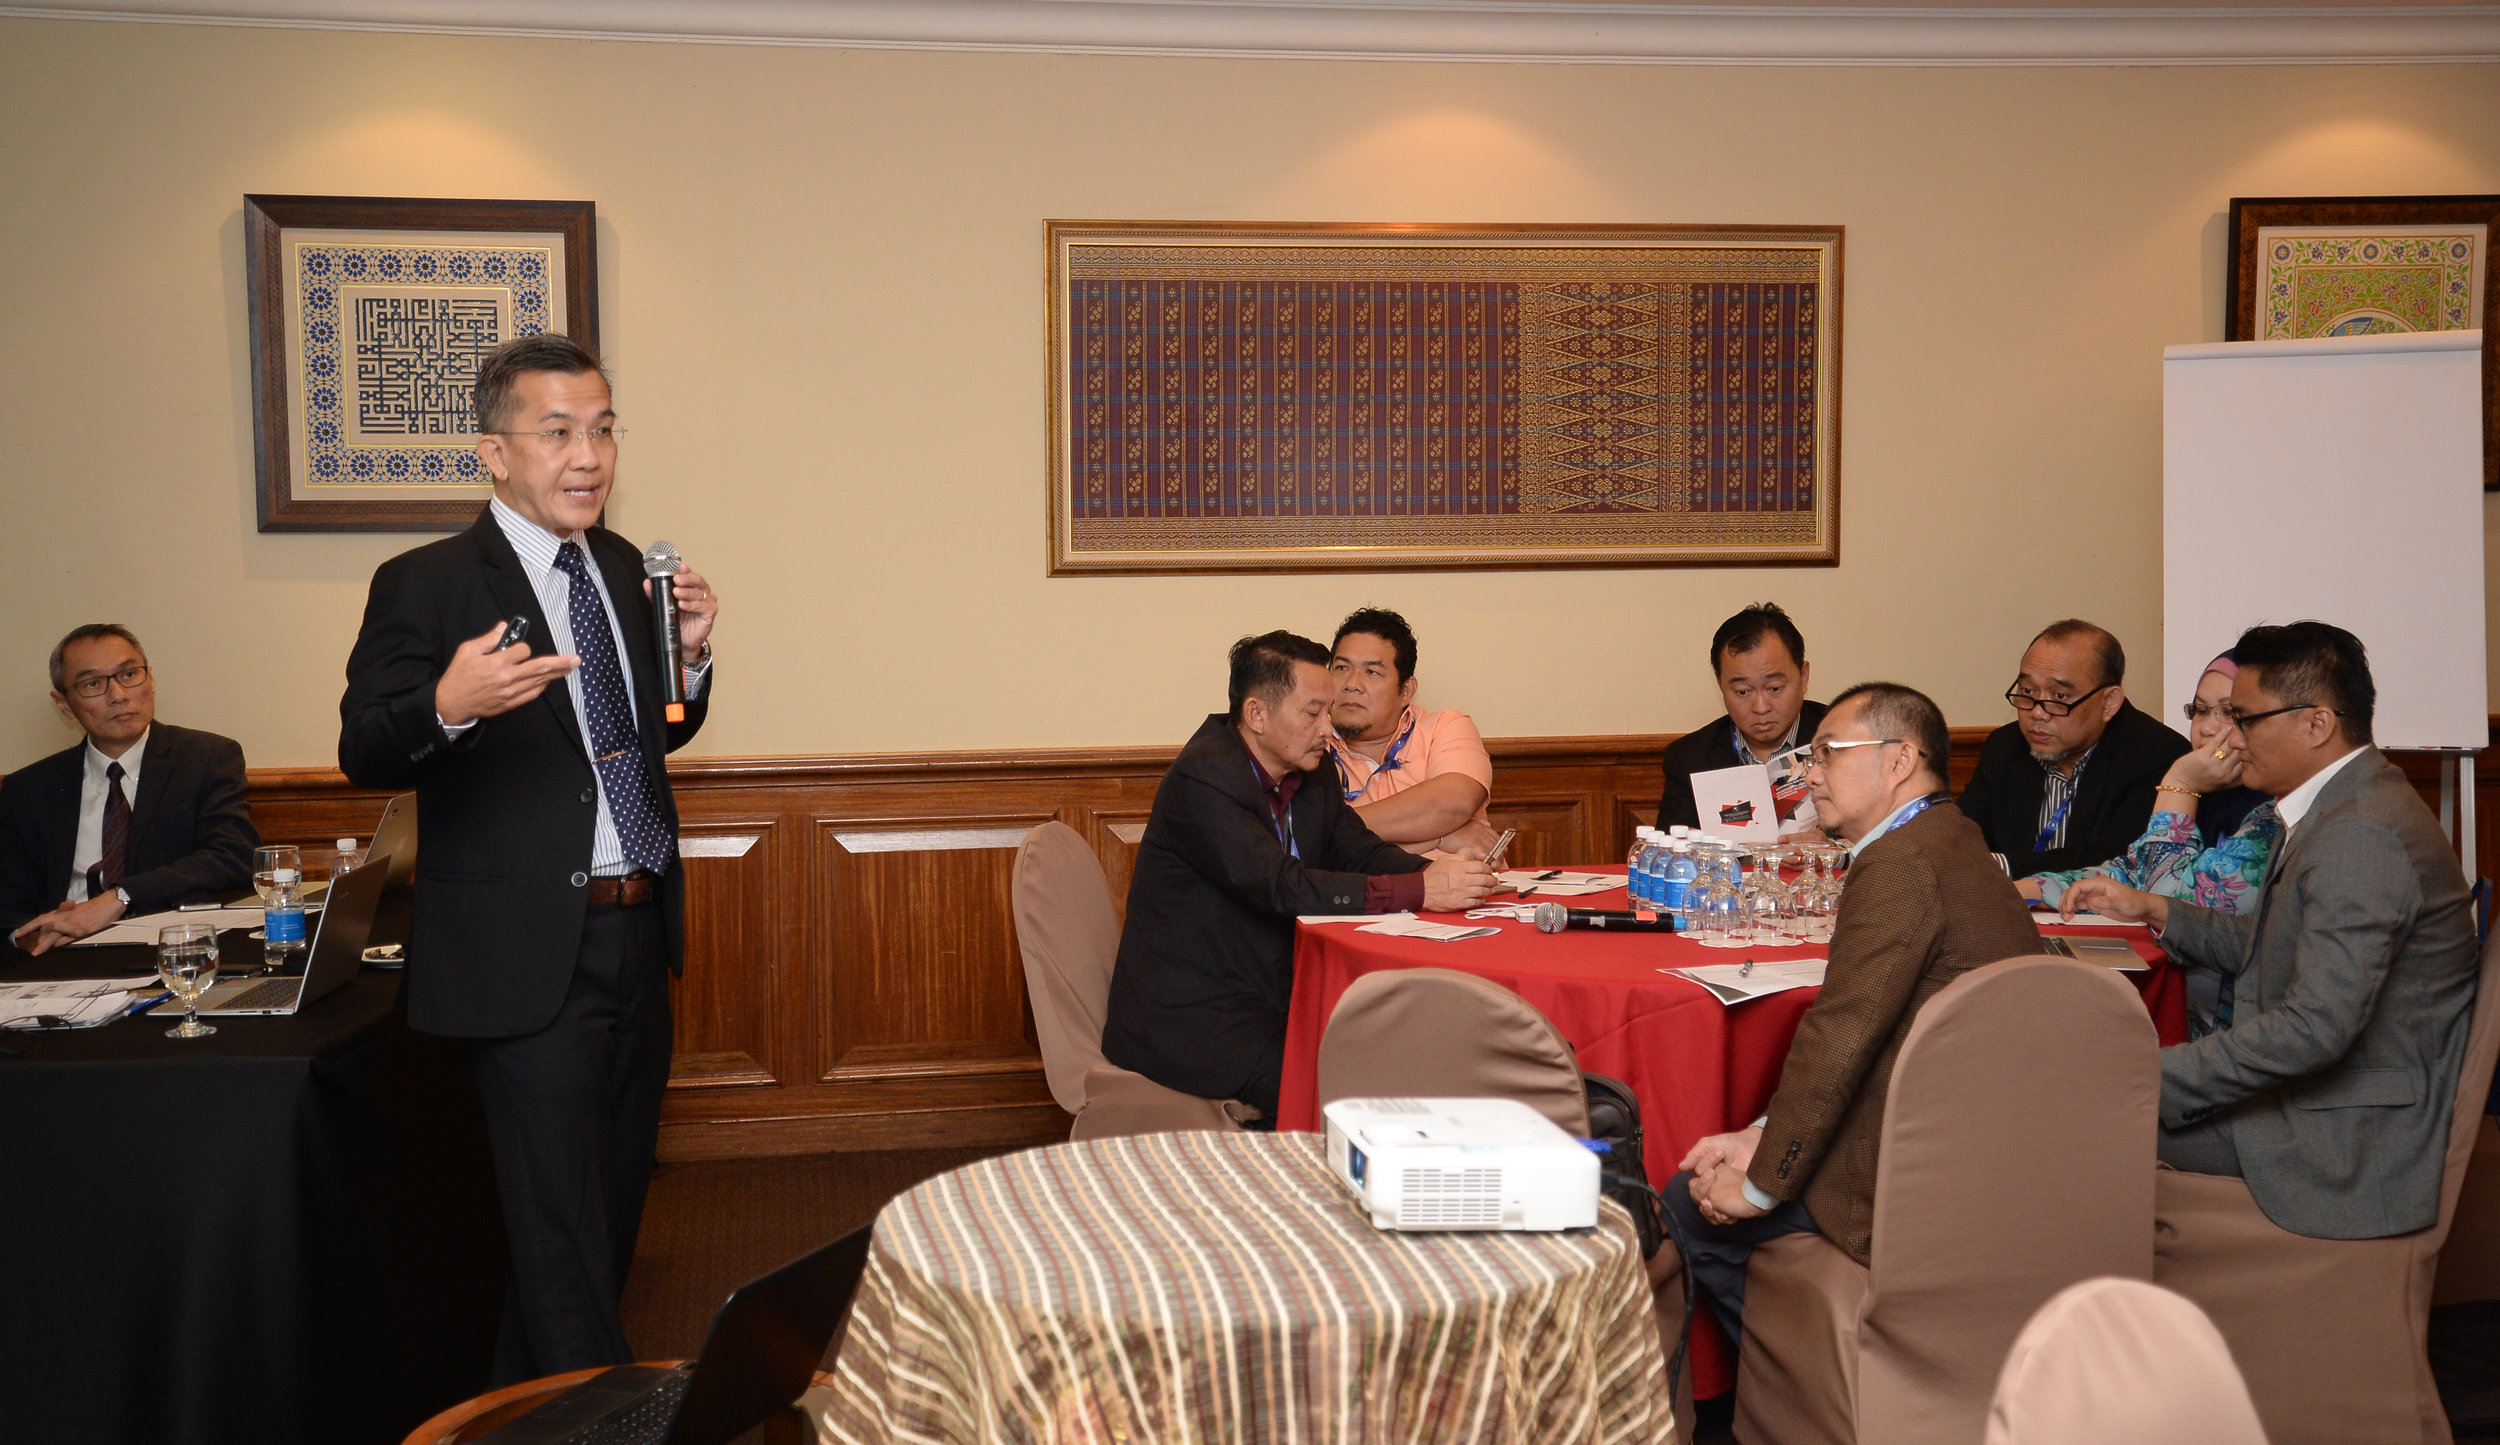 Goh (left) is seen conducting the training programme which was attended by government officers comprising mid-level managers to heads of departments.